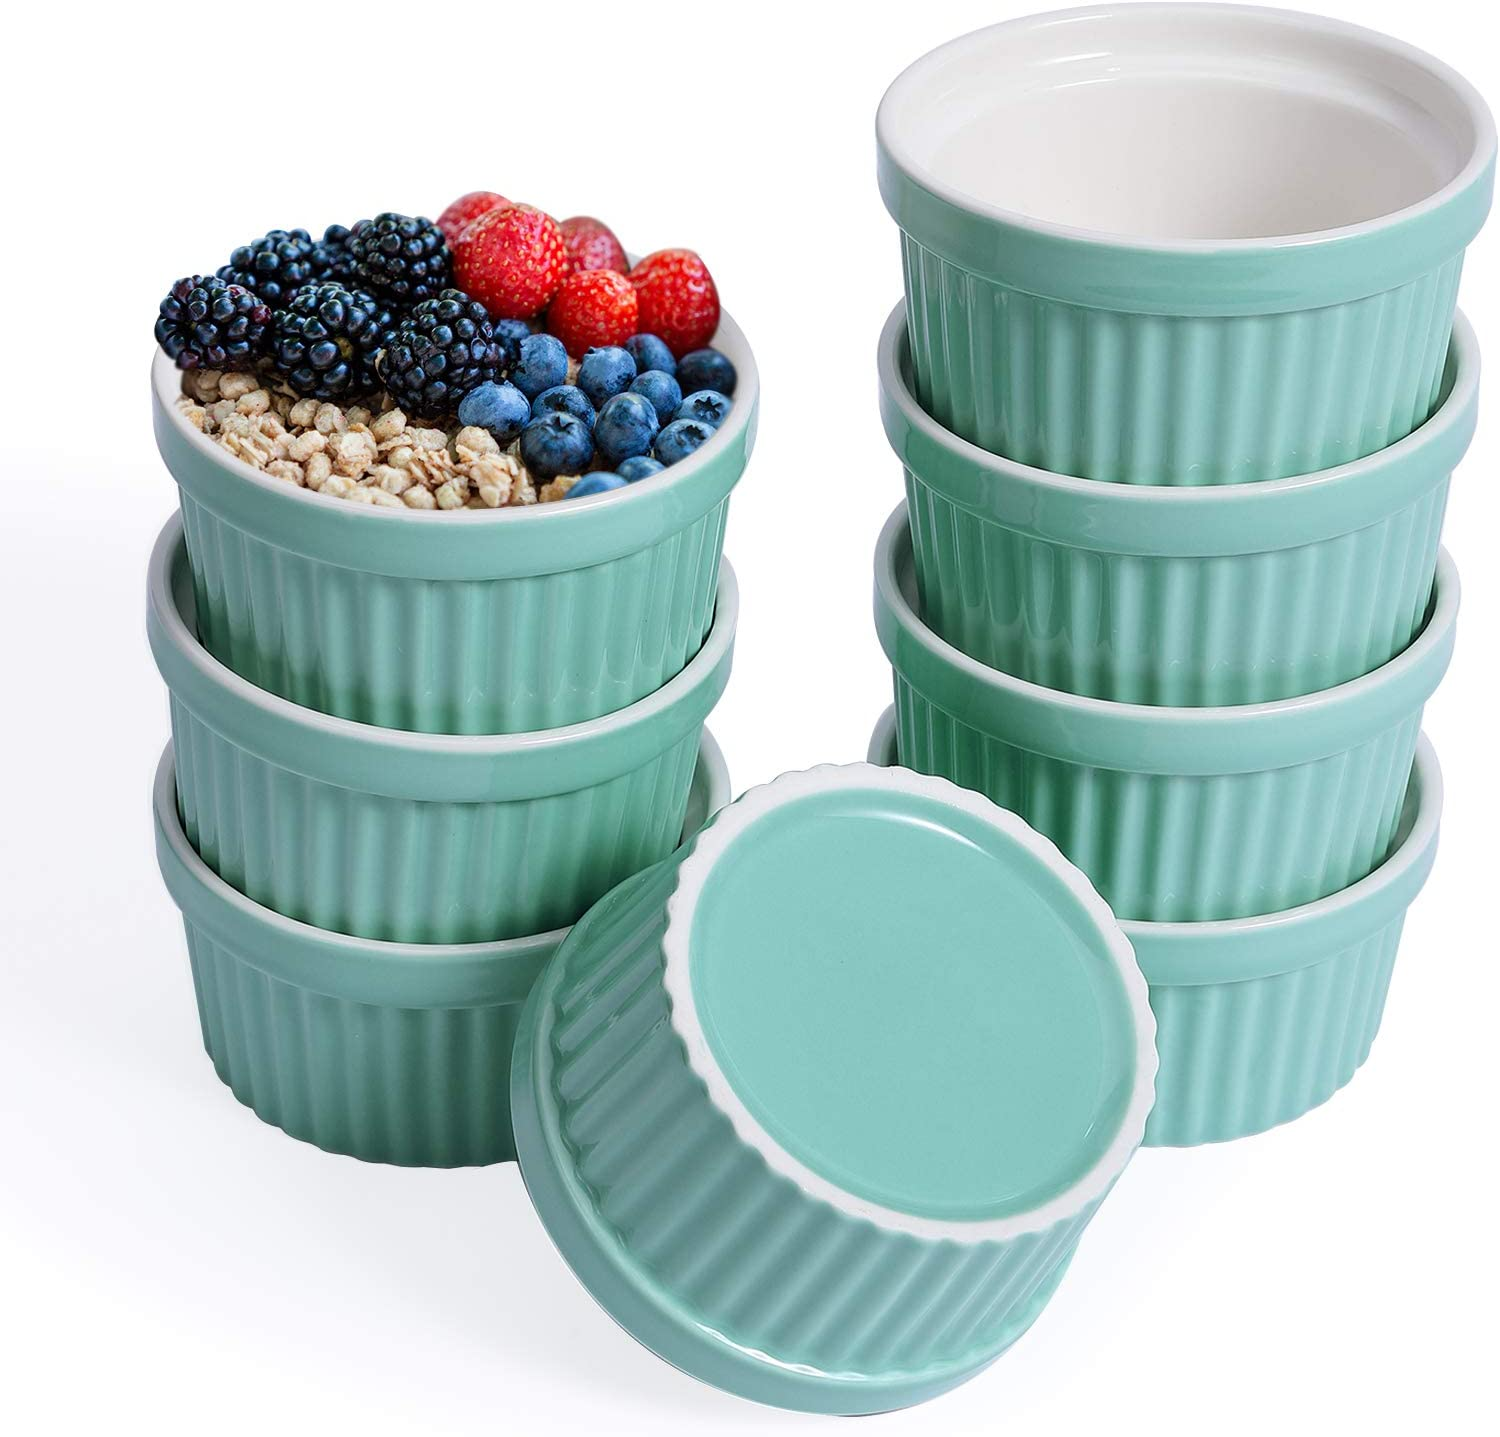 JOLLY CHEF 4 OZ Ramekins Bowls , Set of 8 Souffle Dishes Ramekins for Creme Brulee Dishes,Pudding, Custard Cups , Classic Porcelain Ramekins for Baking, Oven Safe, Blue.Ideal for Halloween, Thanksgiving, Christmas